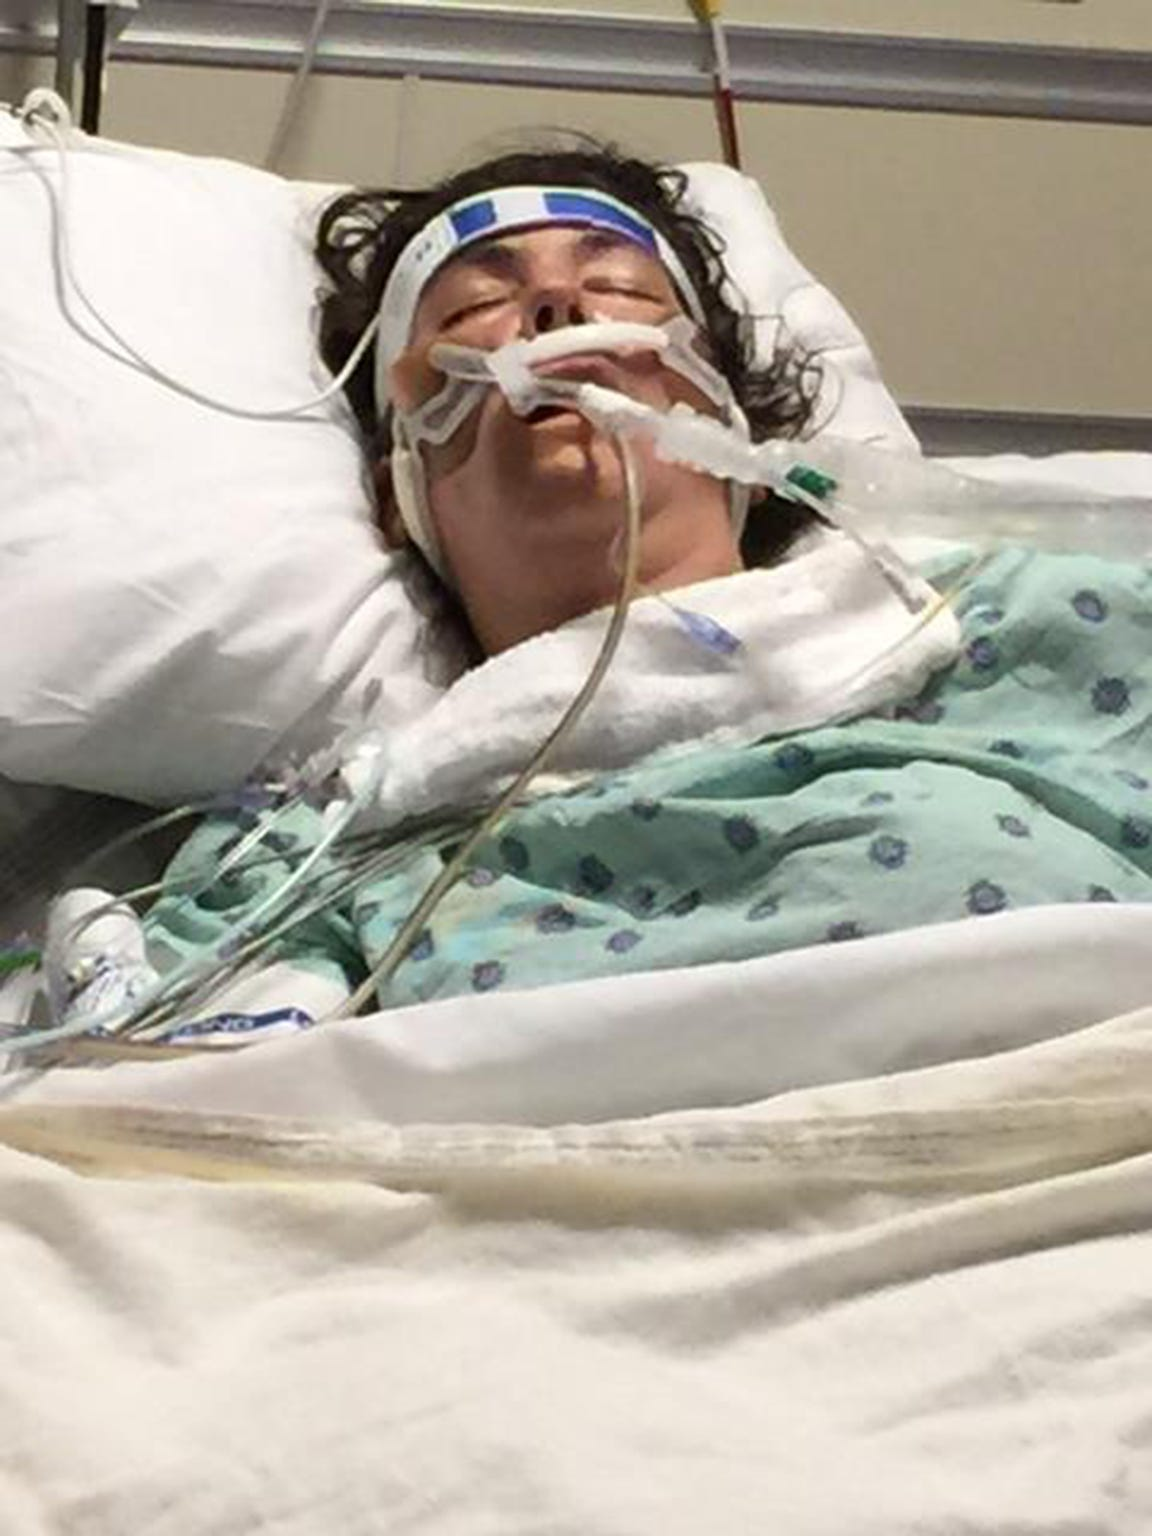 Cortney Small while in a coma in 2015.